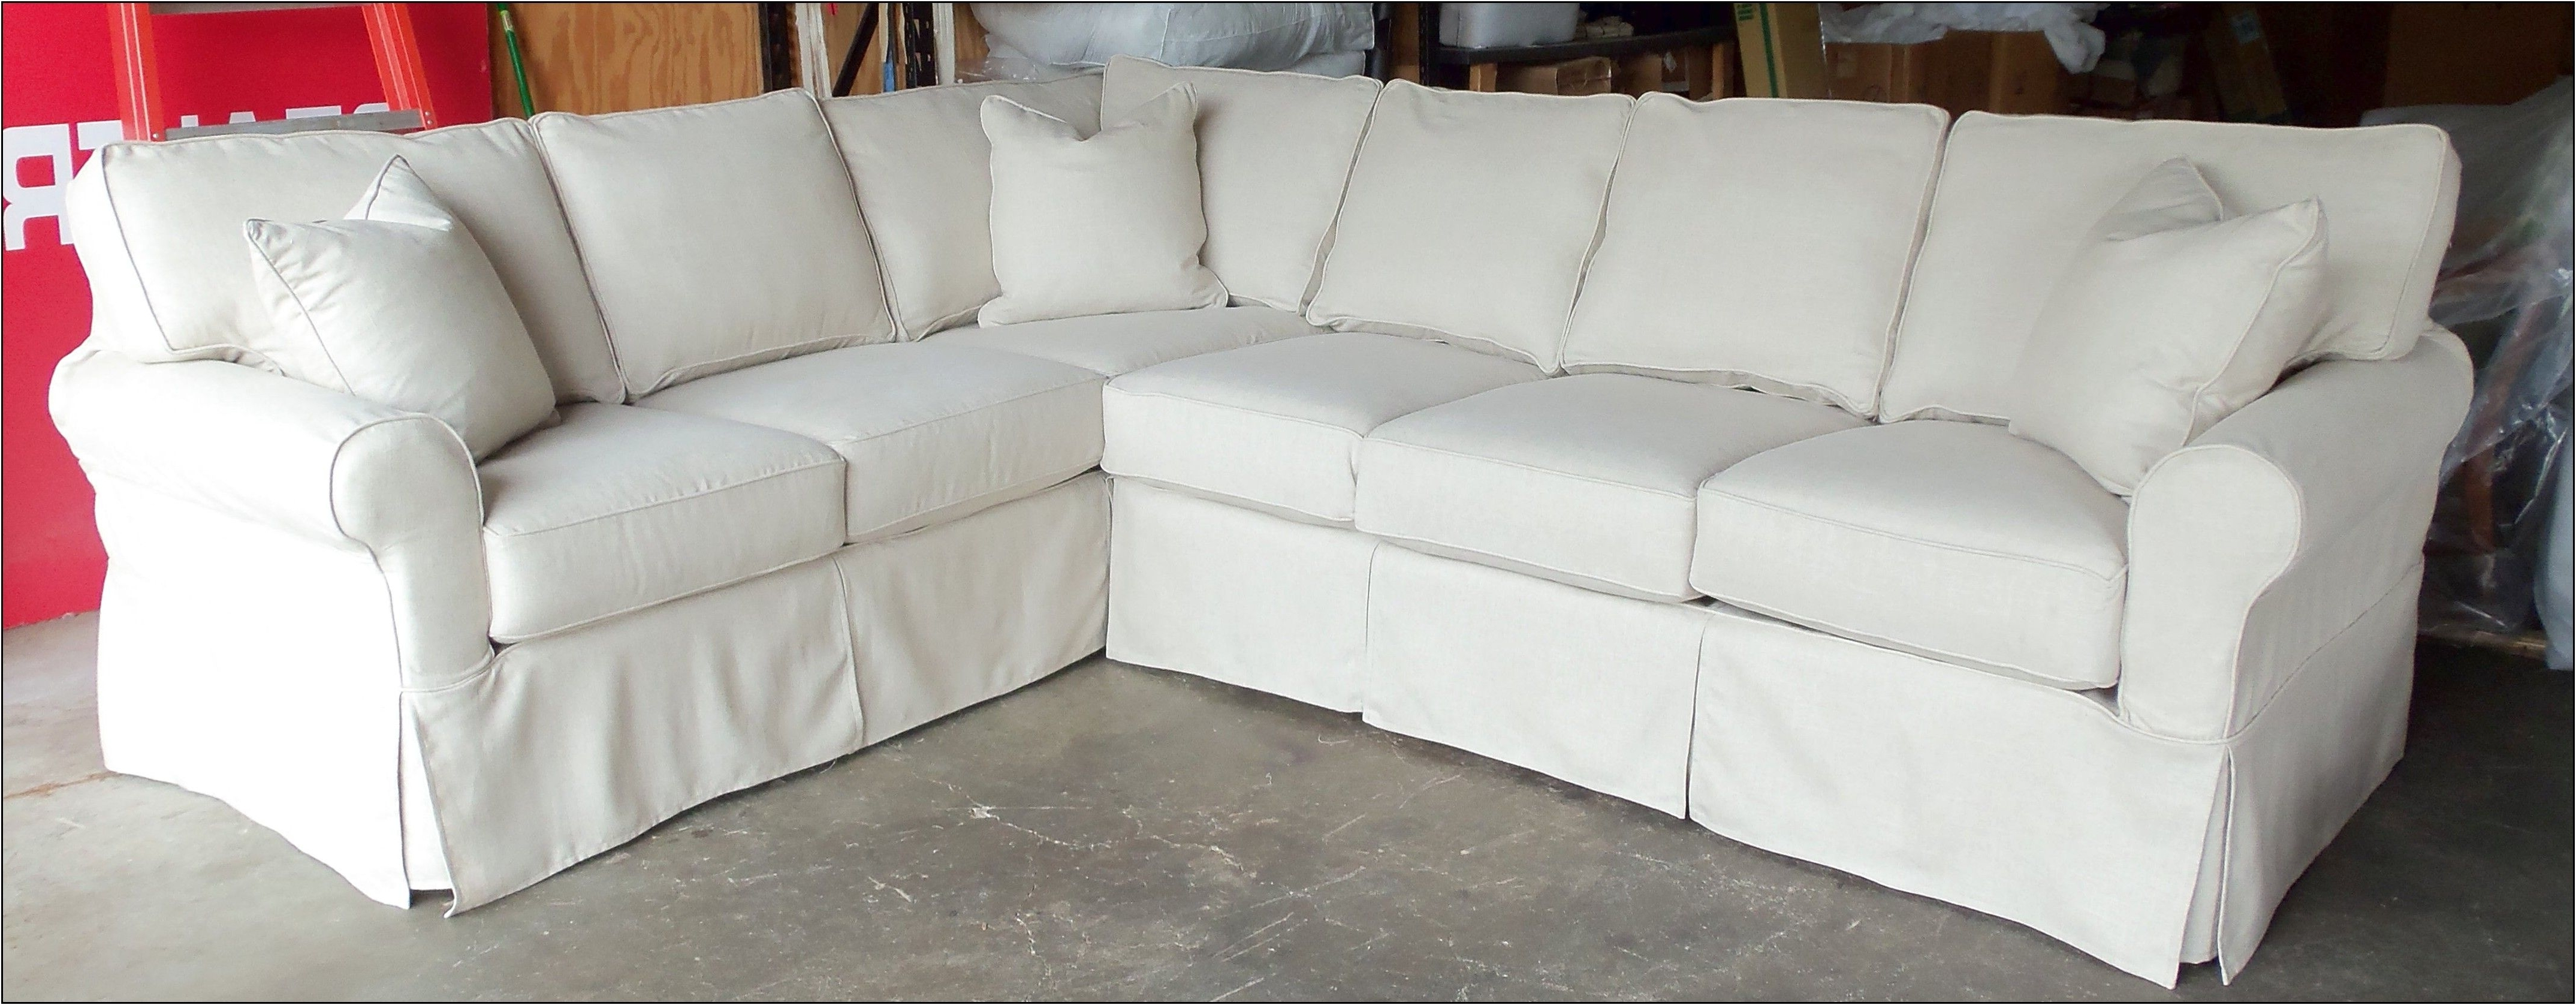 Cool Sectional Couch Cover , Best Sectional Couch Cover 72 For Throughout Favorite Sectional Sofas At Barrie (View 13 of 15)